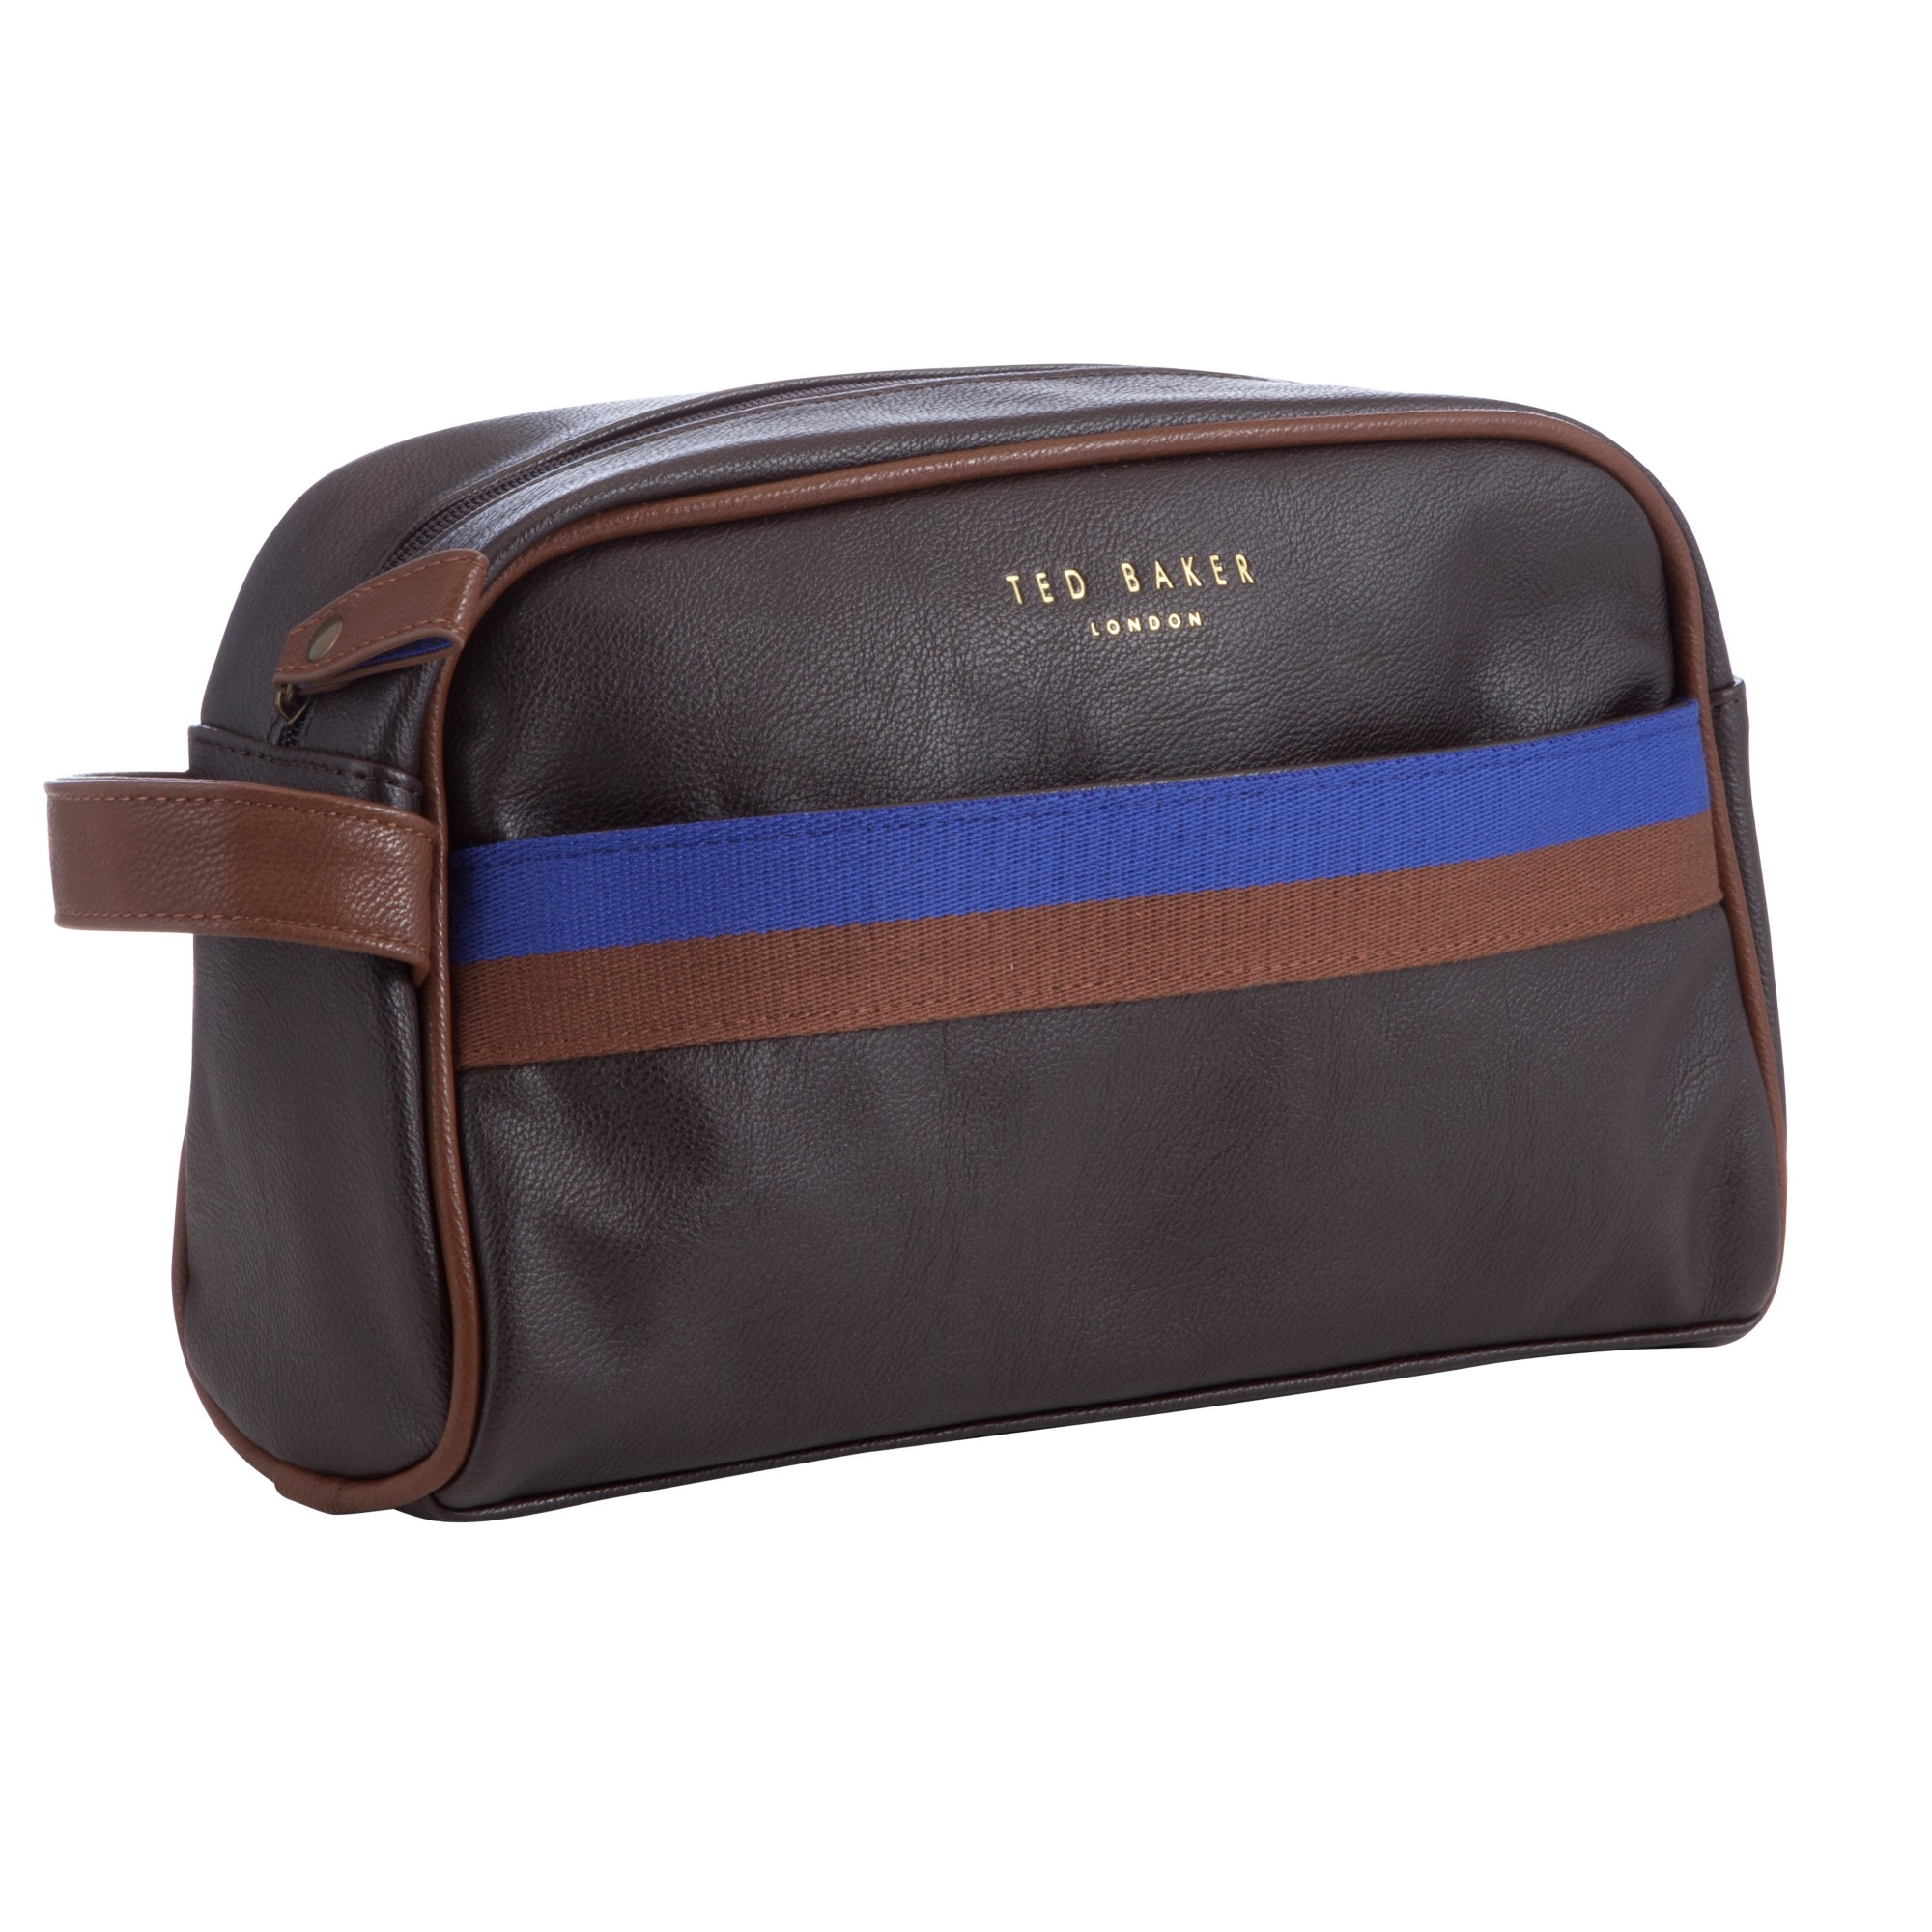 Ted Baker Cleanit Core Webbing Wash Bag in Brown for Men - Lyst c6445787461e2